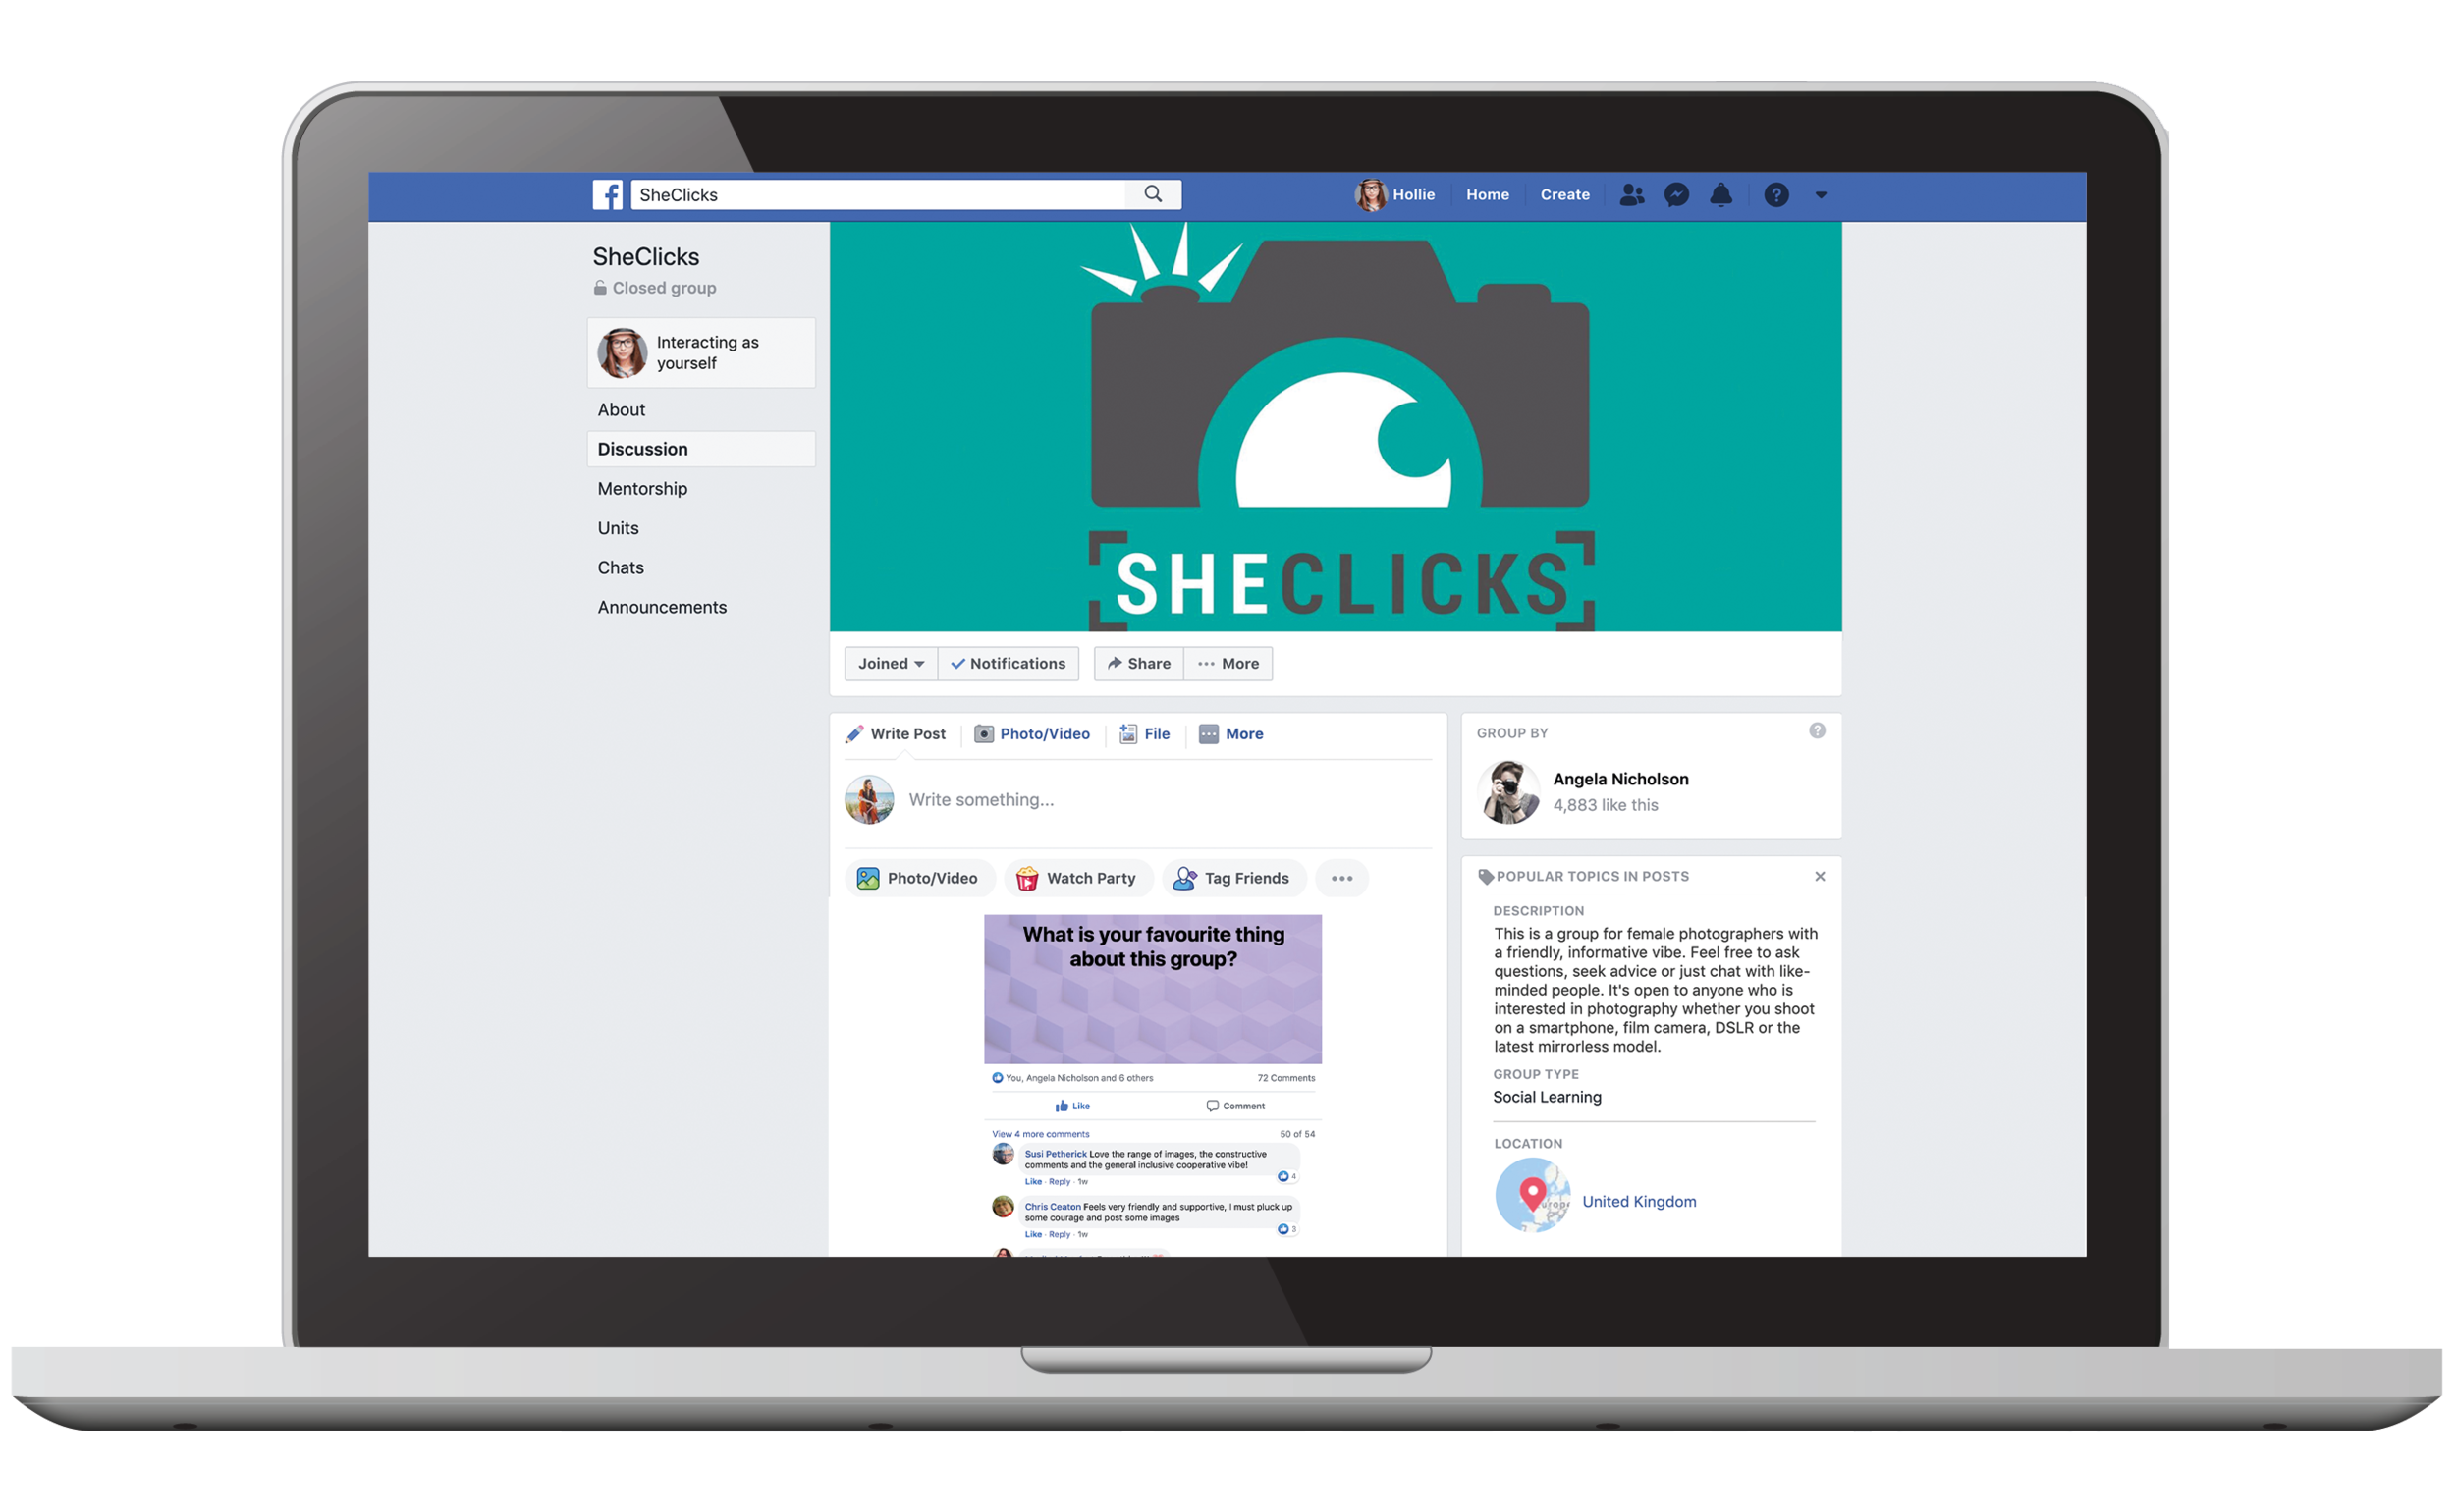 S H E C L I C K S  - SheClicks was founded in August 2018 by Angela Nicholson, beginning life as a Facebook group.